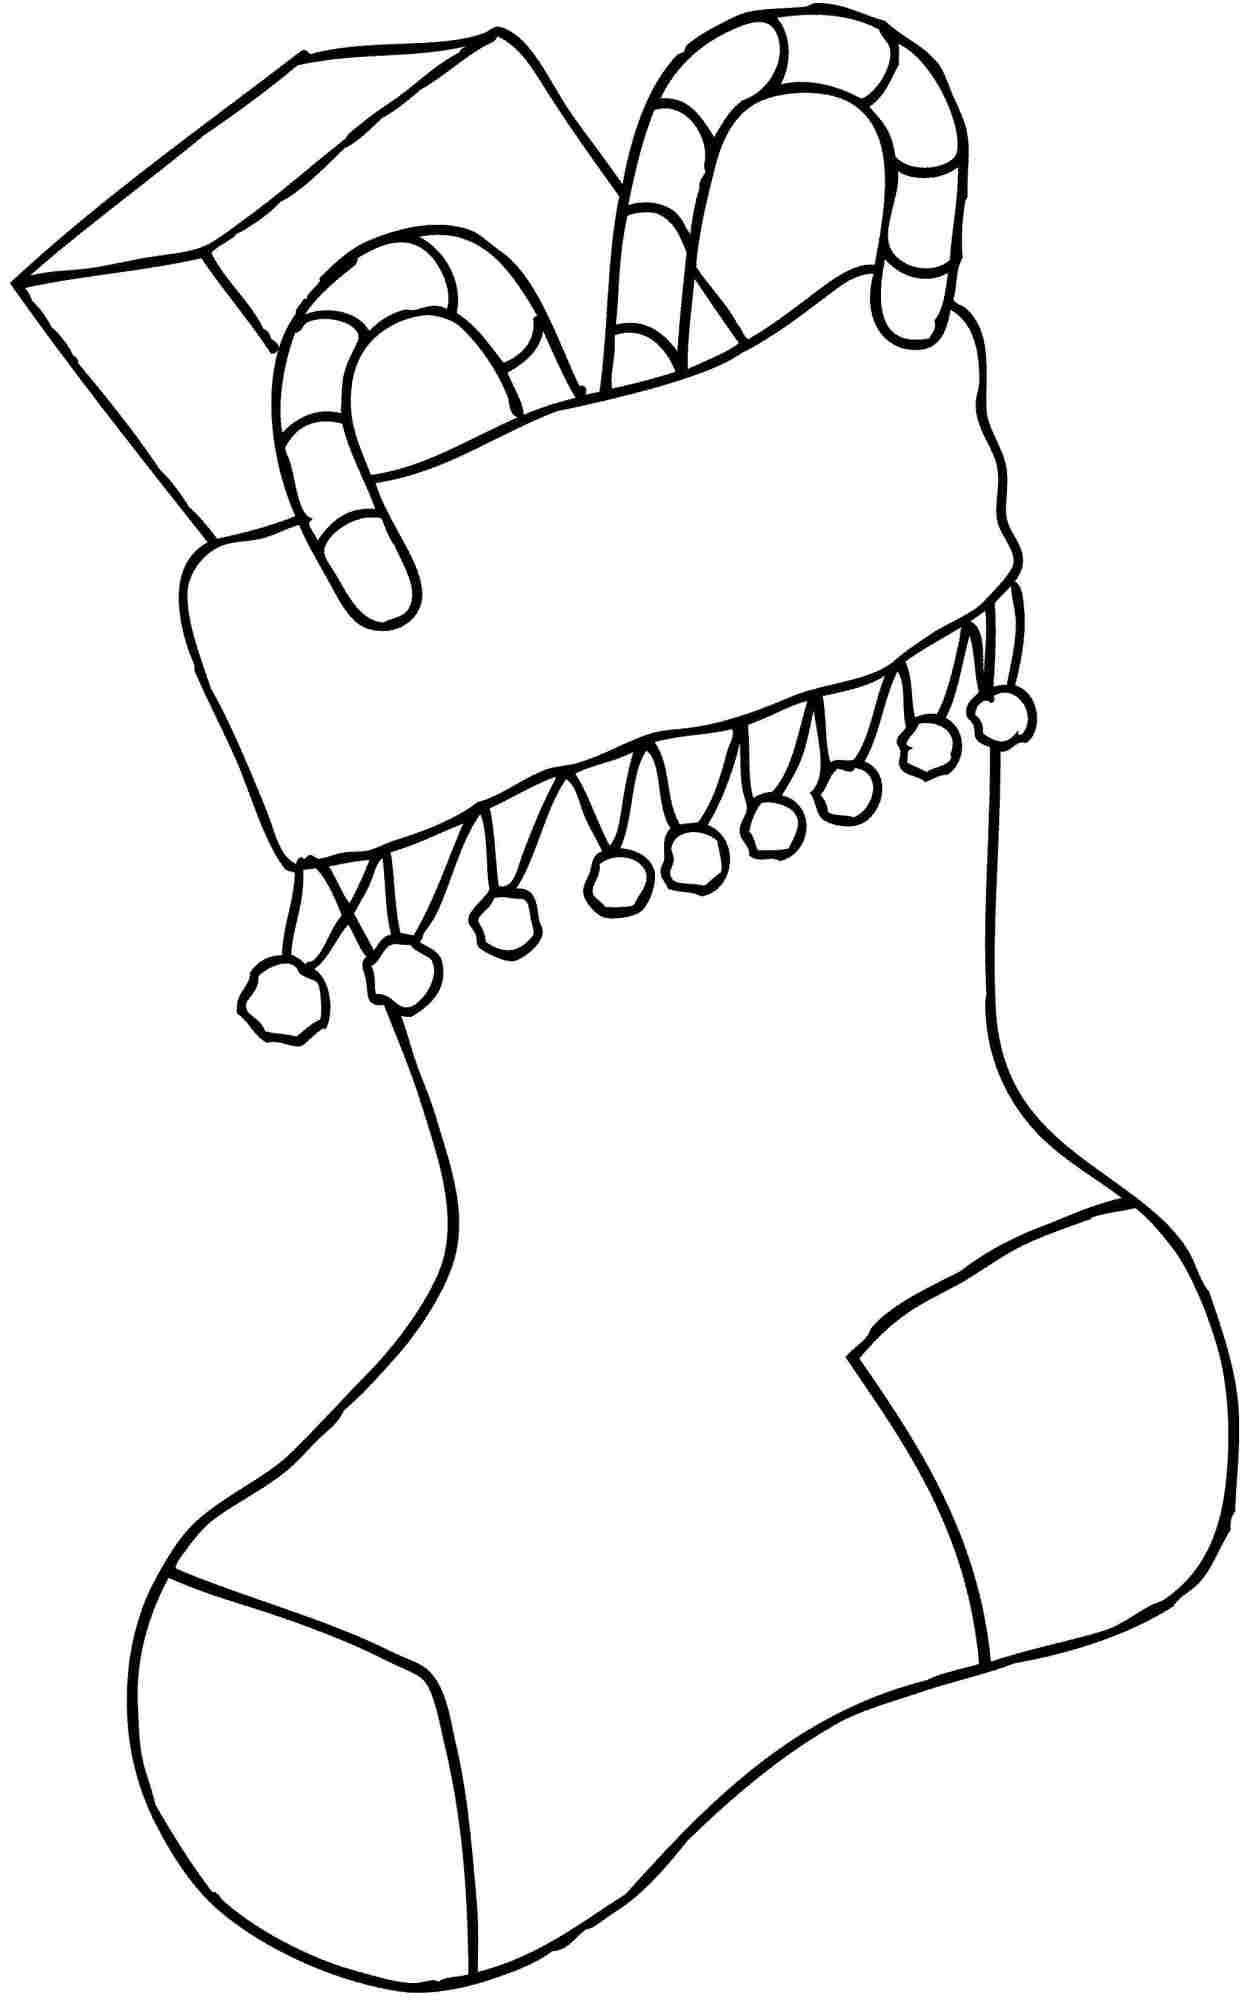 Christmas Socks Drawing | Free download on ClipArtMag